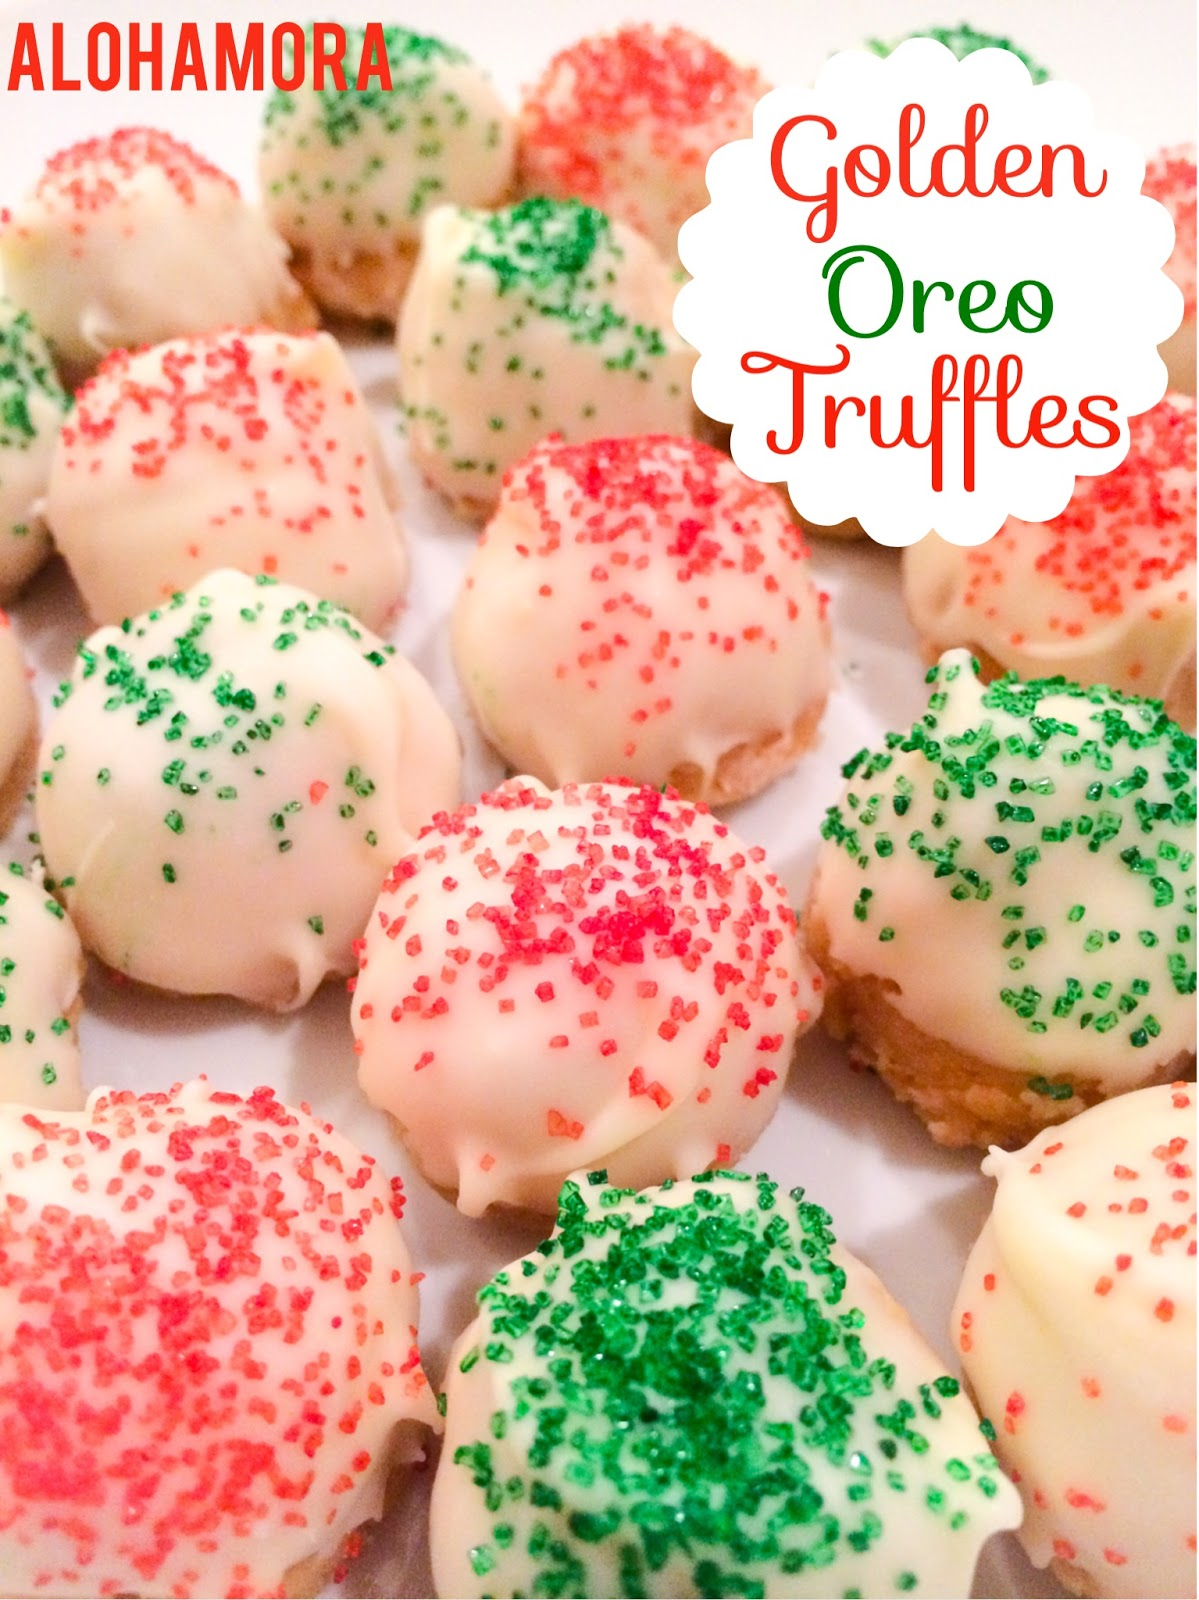 Golden Orea Truffles- Easy to make, absolutely delicious, and a fun festive Holiday treat.  No bake treats that will impress everyone.  Alohamora Open a Book http://alohamoraopenabook.blogspot.com/